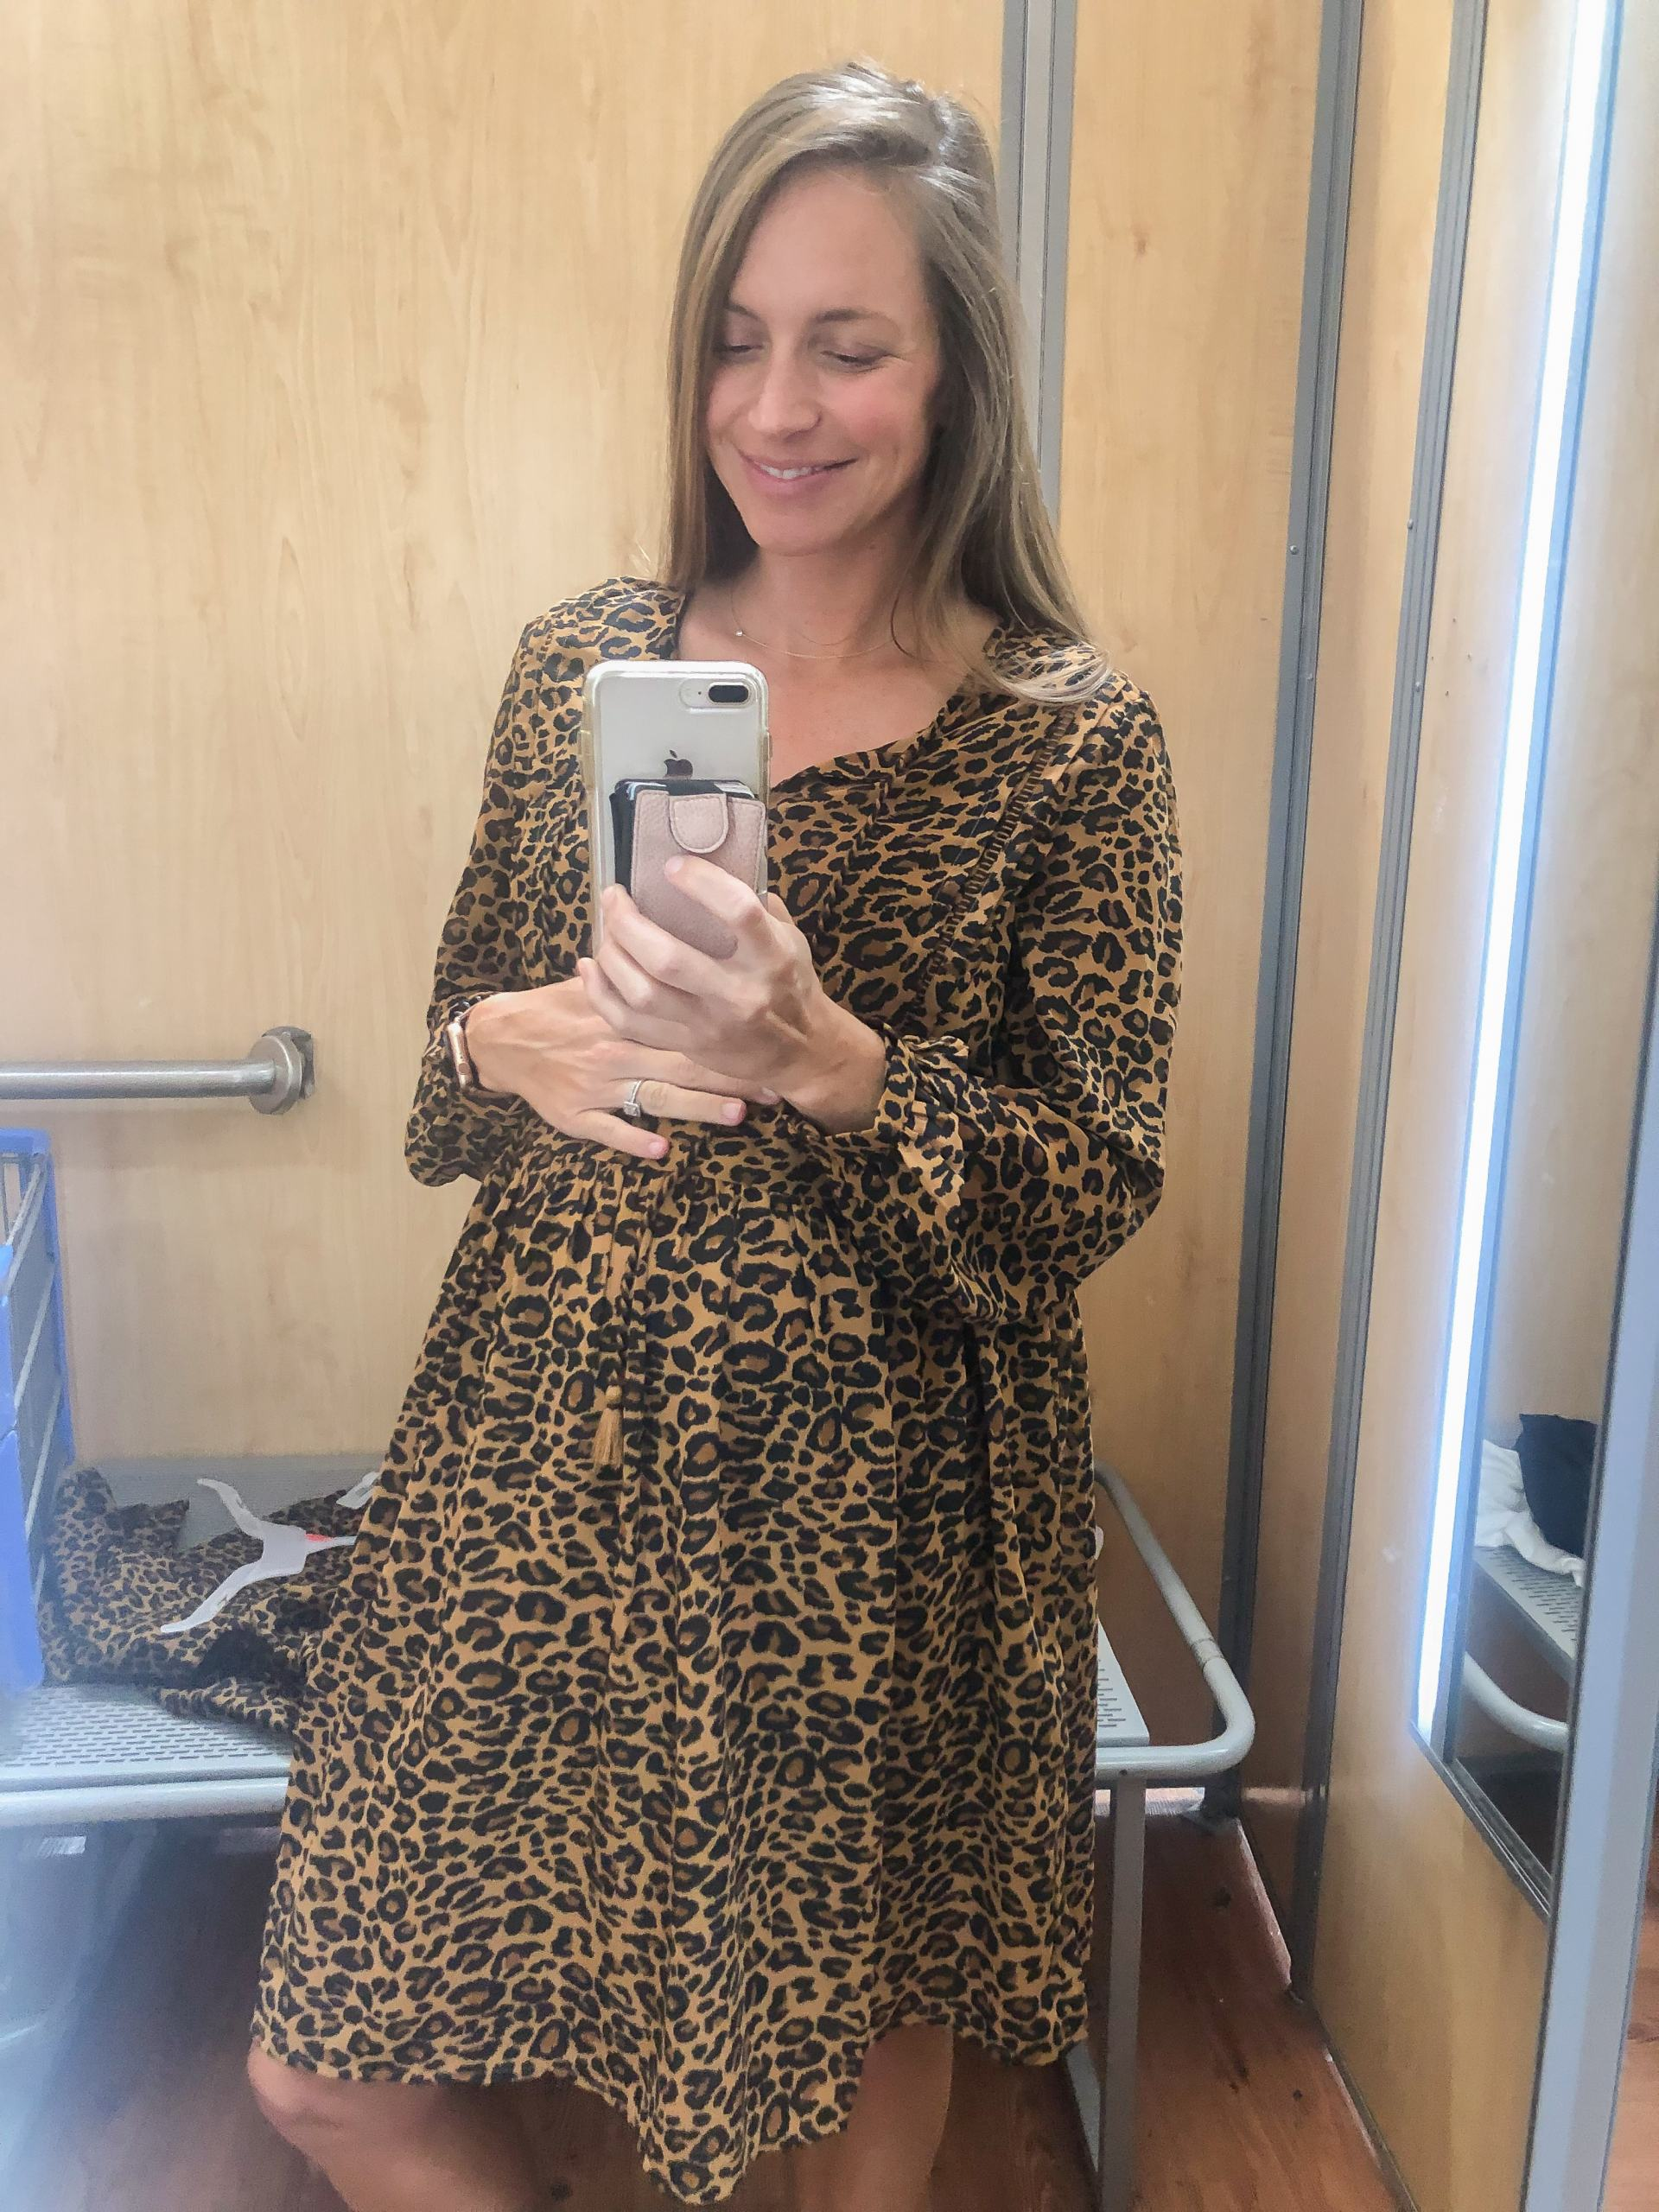 affordable fashion - walmart fashion - fall outfit ideas - fall fashion inspo - walmart try on - walmart fall clothing - budget outfits - style on a budget - walmart blogger - leopard dress